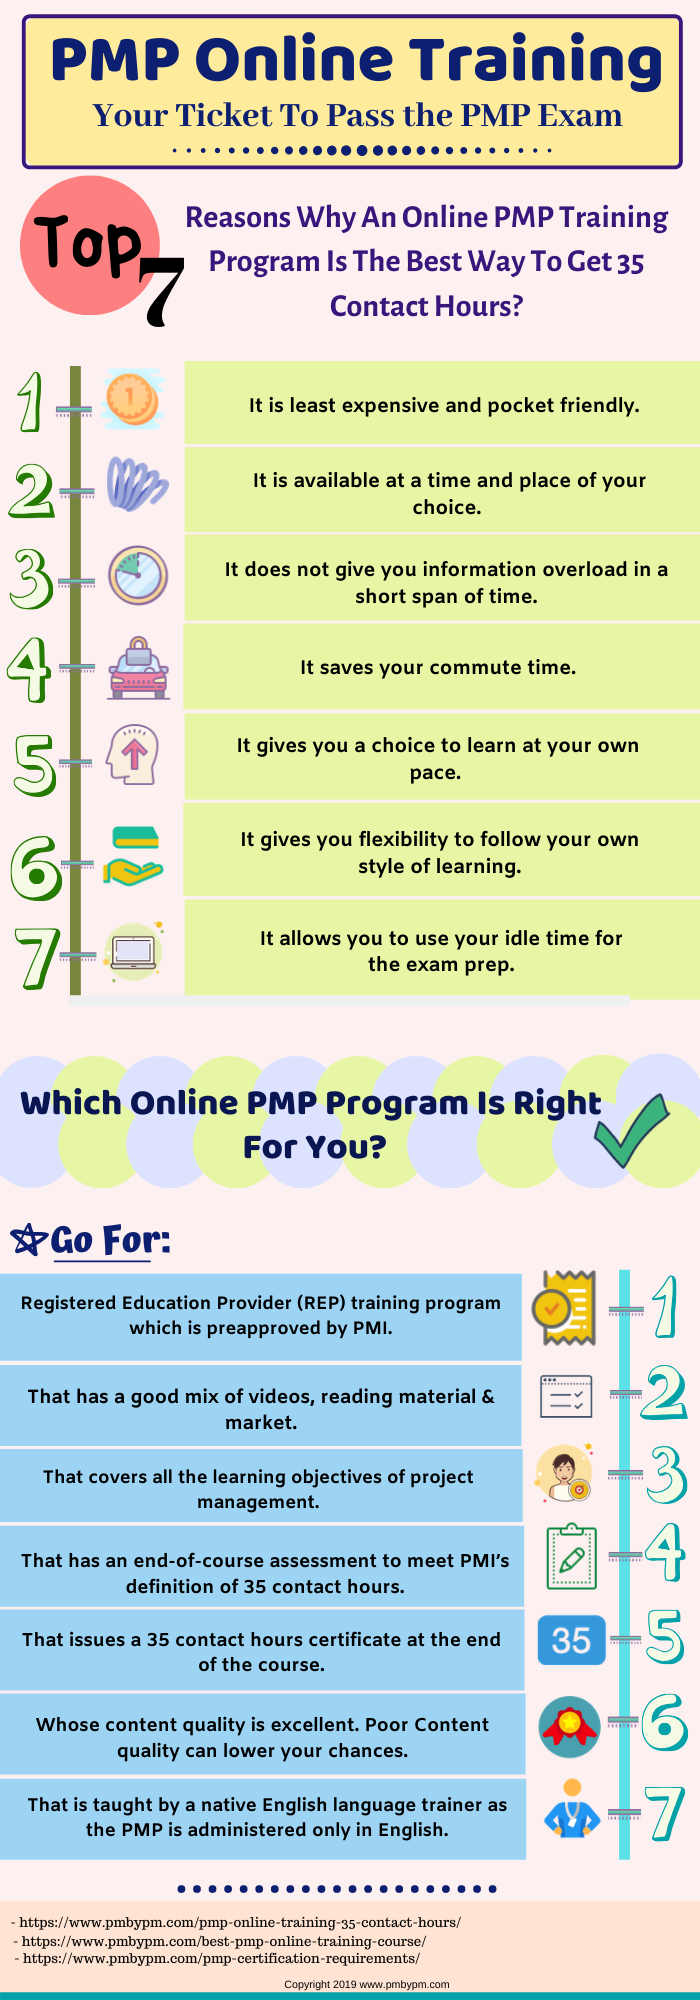 How To Get 35 Contact Hours For Pmp Application